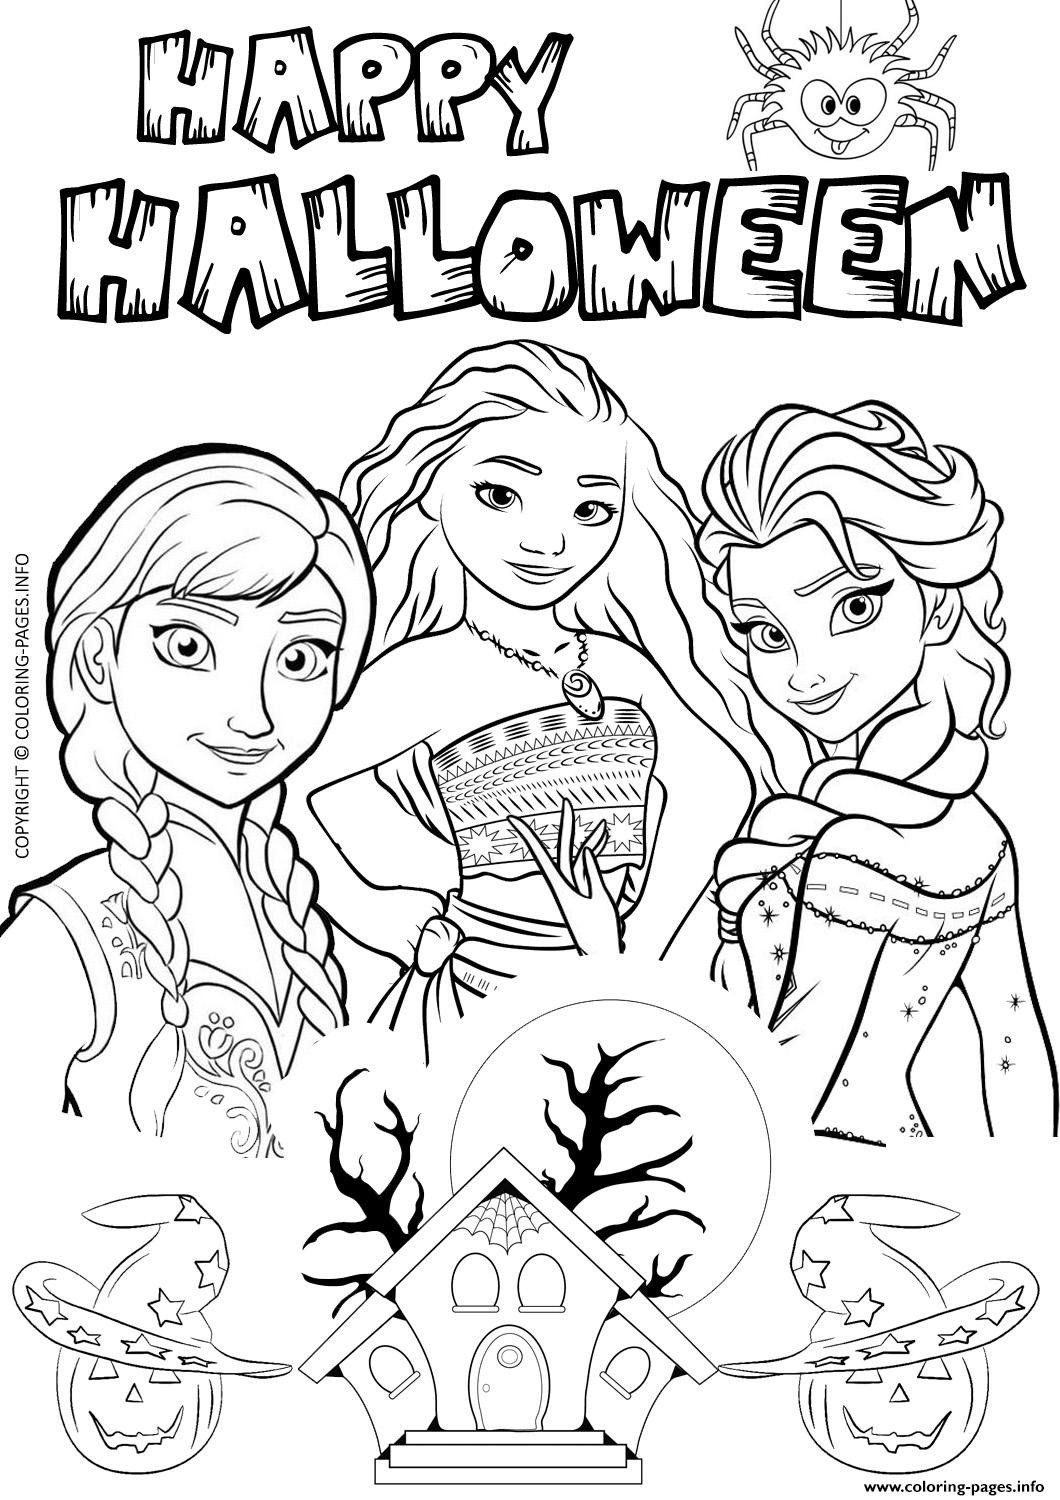 Coloring Pages Disney Hard Coloring Pages Disney Princess Halloween Coloring Pages Superhero Coloring Pages Halloween Coloring Sheets Halloween Coloring